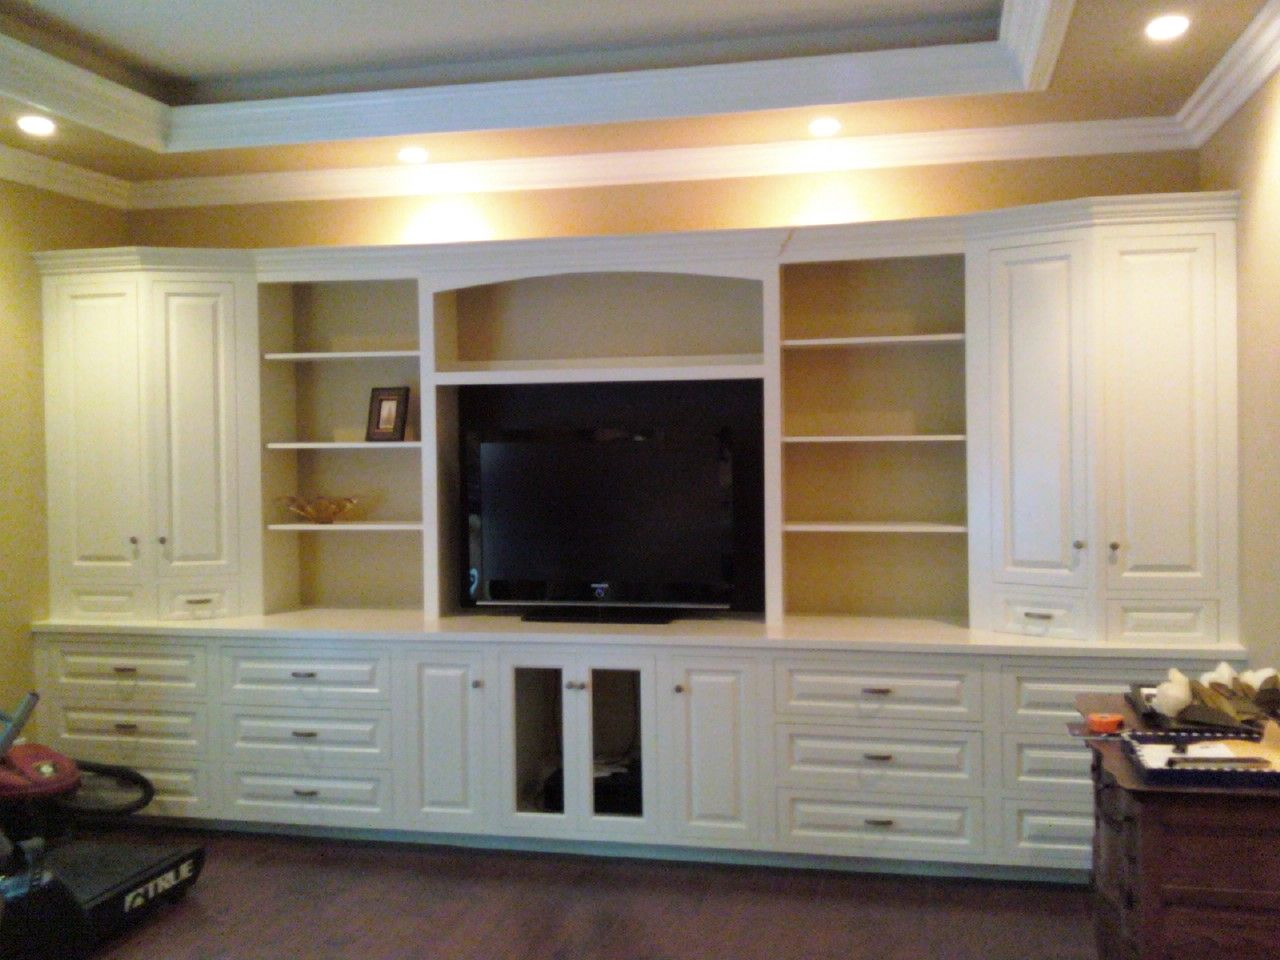 Custom Cabinet Plans Built In Wall Unit Designs Houses Plans Designs  Cabinets Very Nice